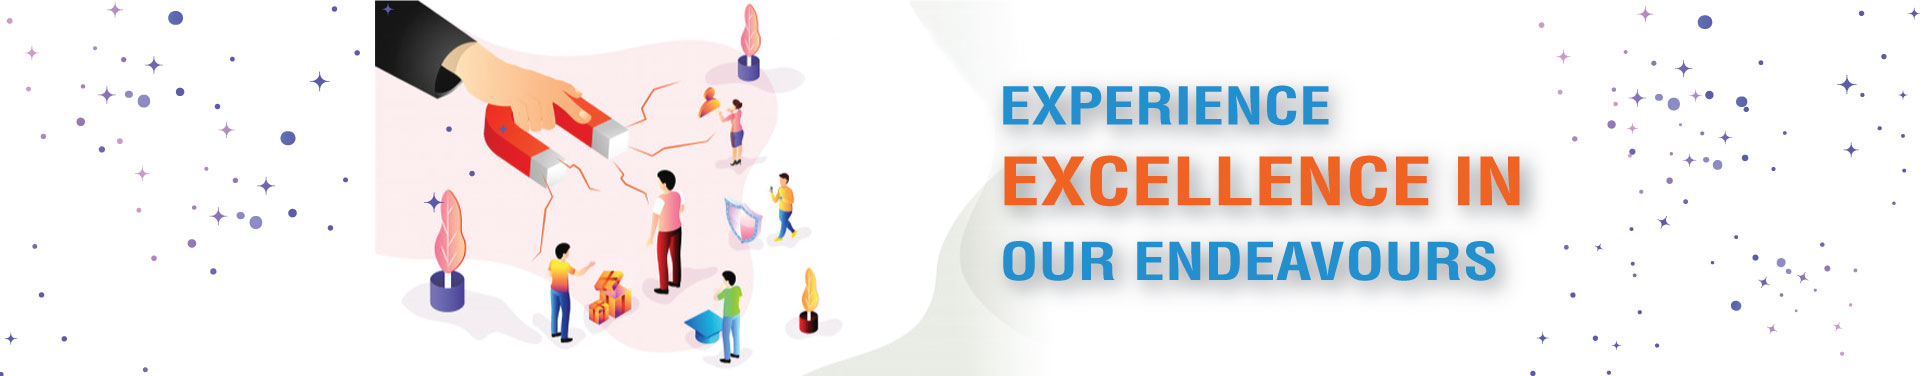 EXPERIENCE EXCELLENCE IN OUR ENDEAVOURS